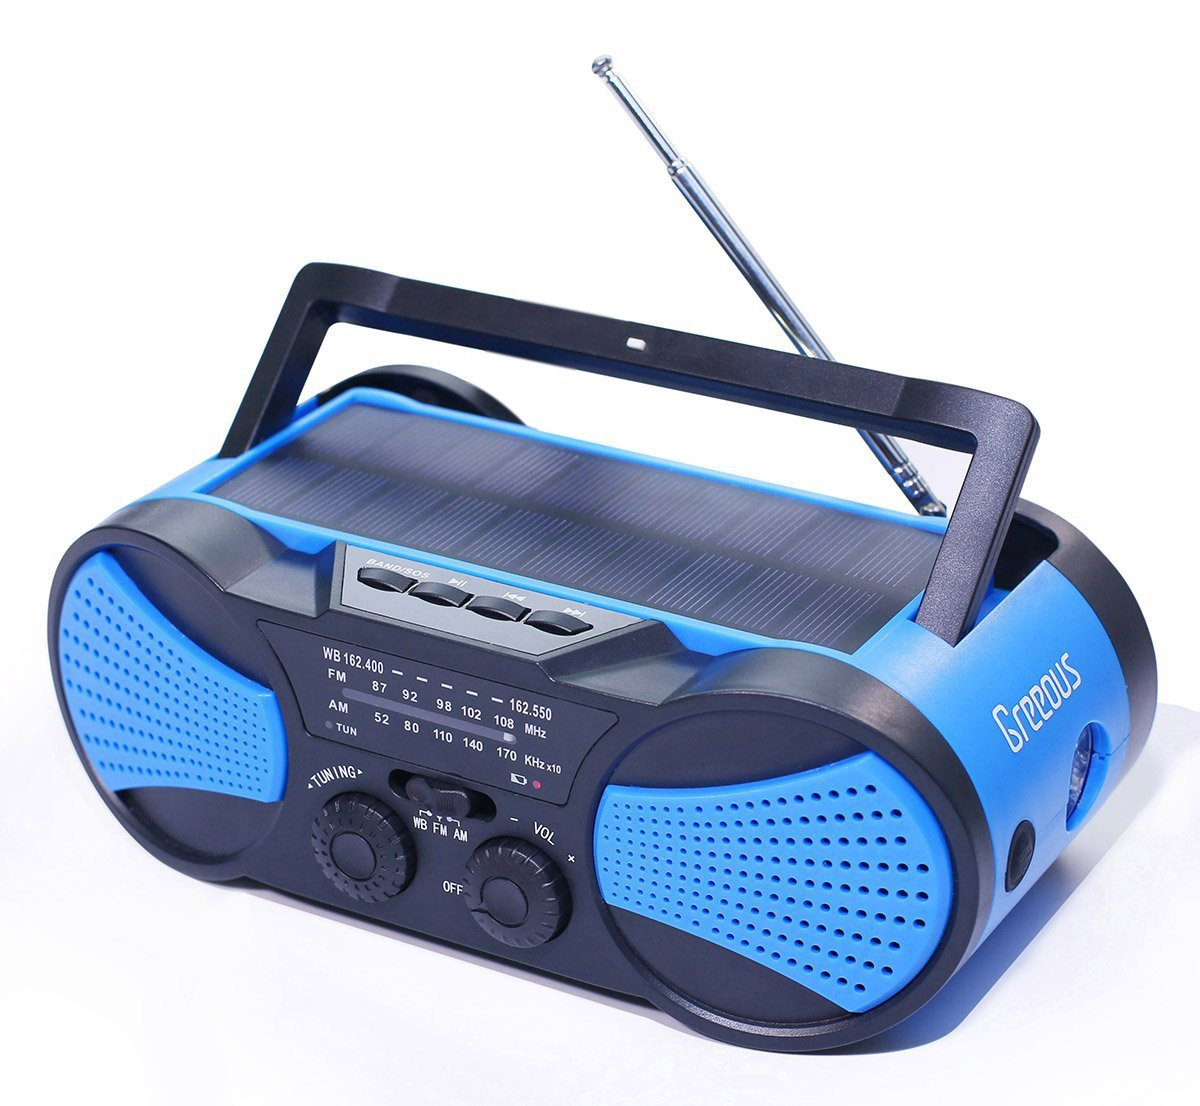 Hurricane Radio Weather Radio,Battery, Hand Crank, Solar Powered, AM/FM/NOAA/SOS,4000mAh USB Charger for Phone,Flashlight& Reading Lamp,Emergency kit,Blue,Greeous